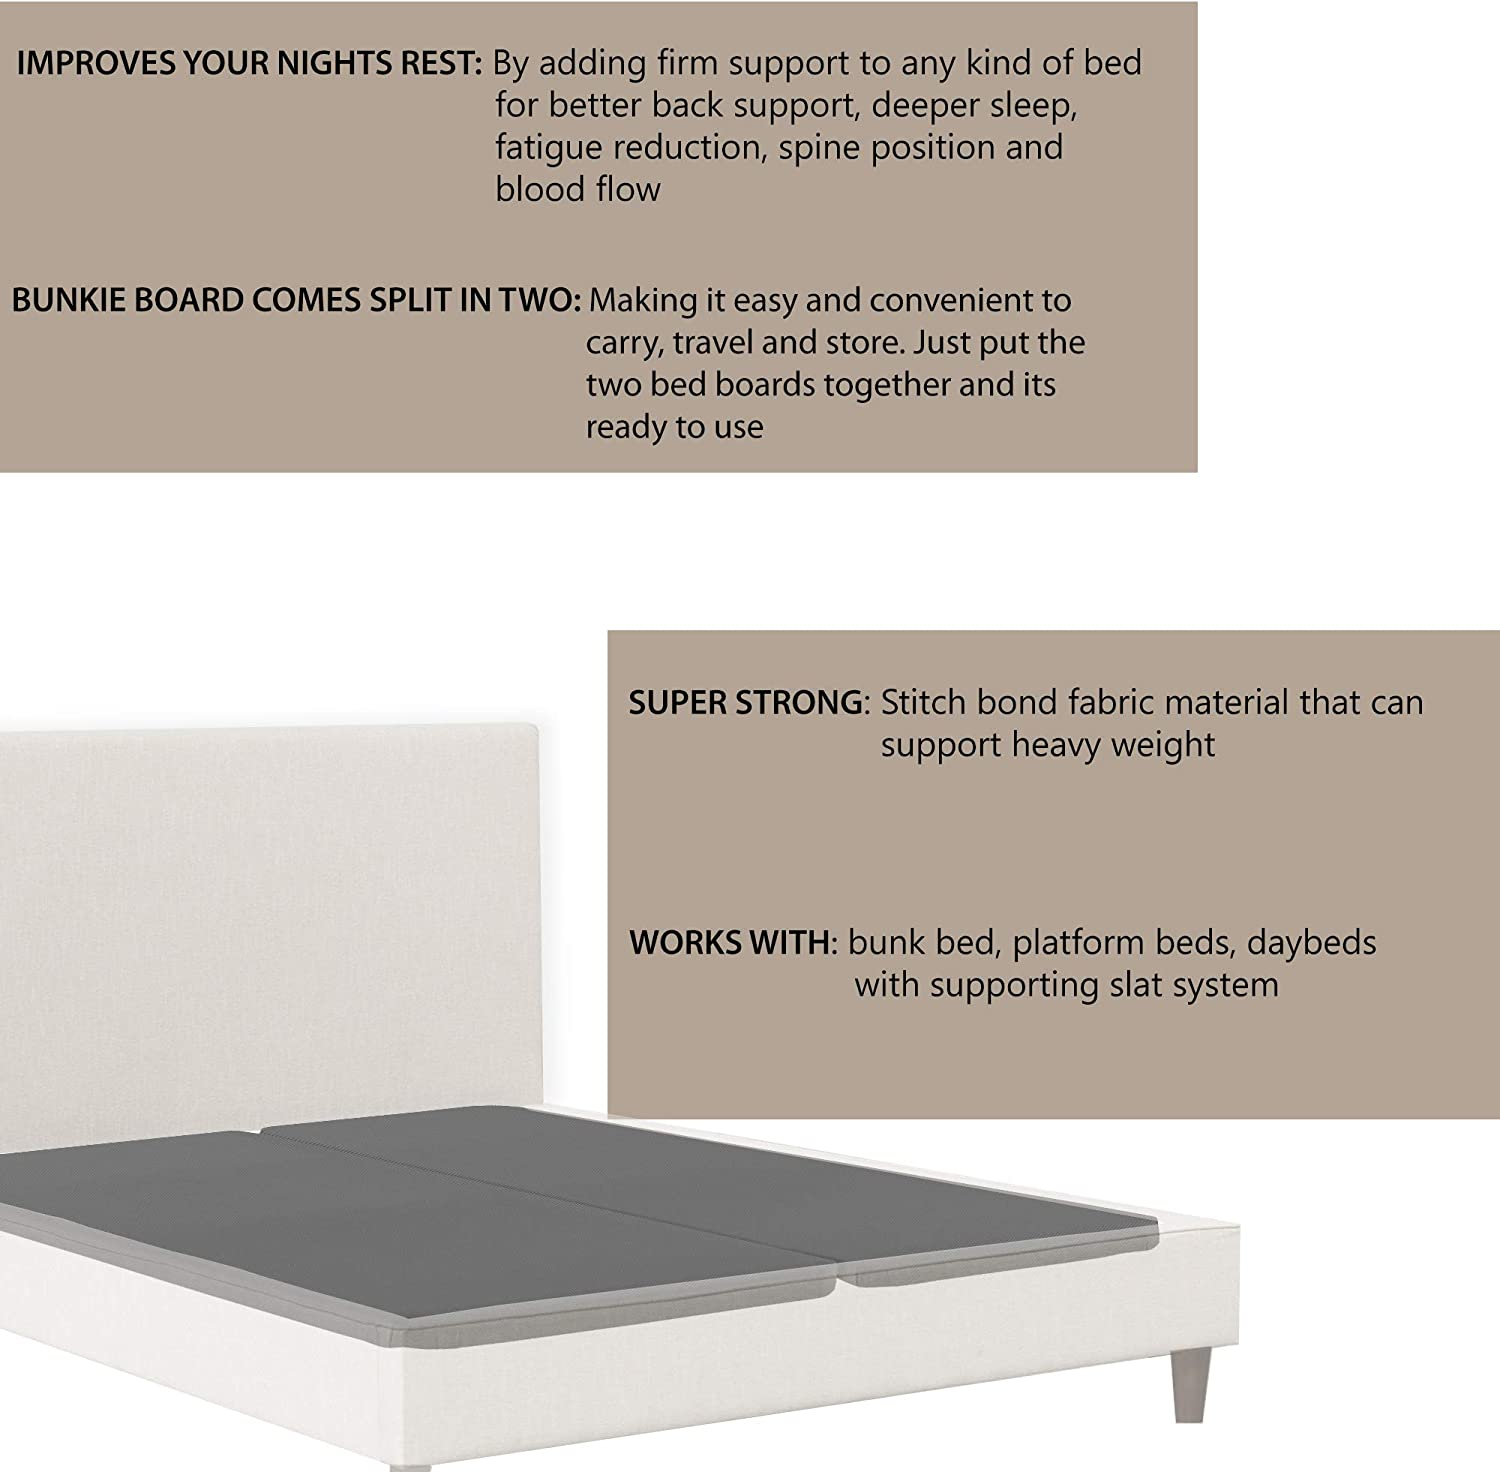 Mayton 2-Inch Wood Bunkie Board//Slats,Mattress Bed Support,Fits Standard Twin Size color may vary Grey